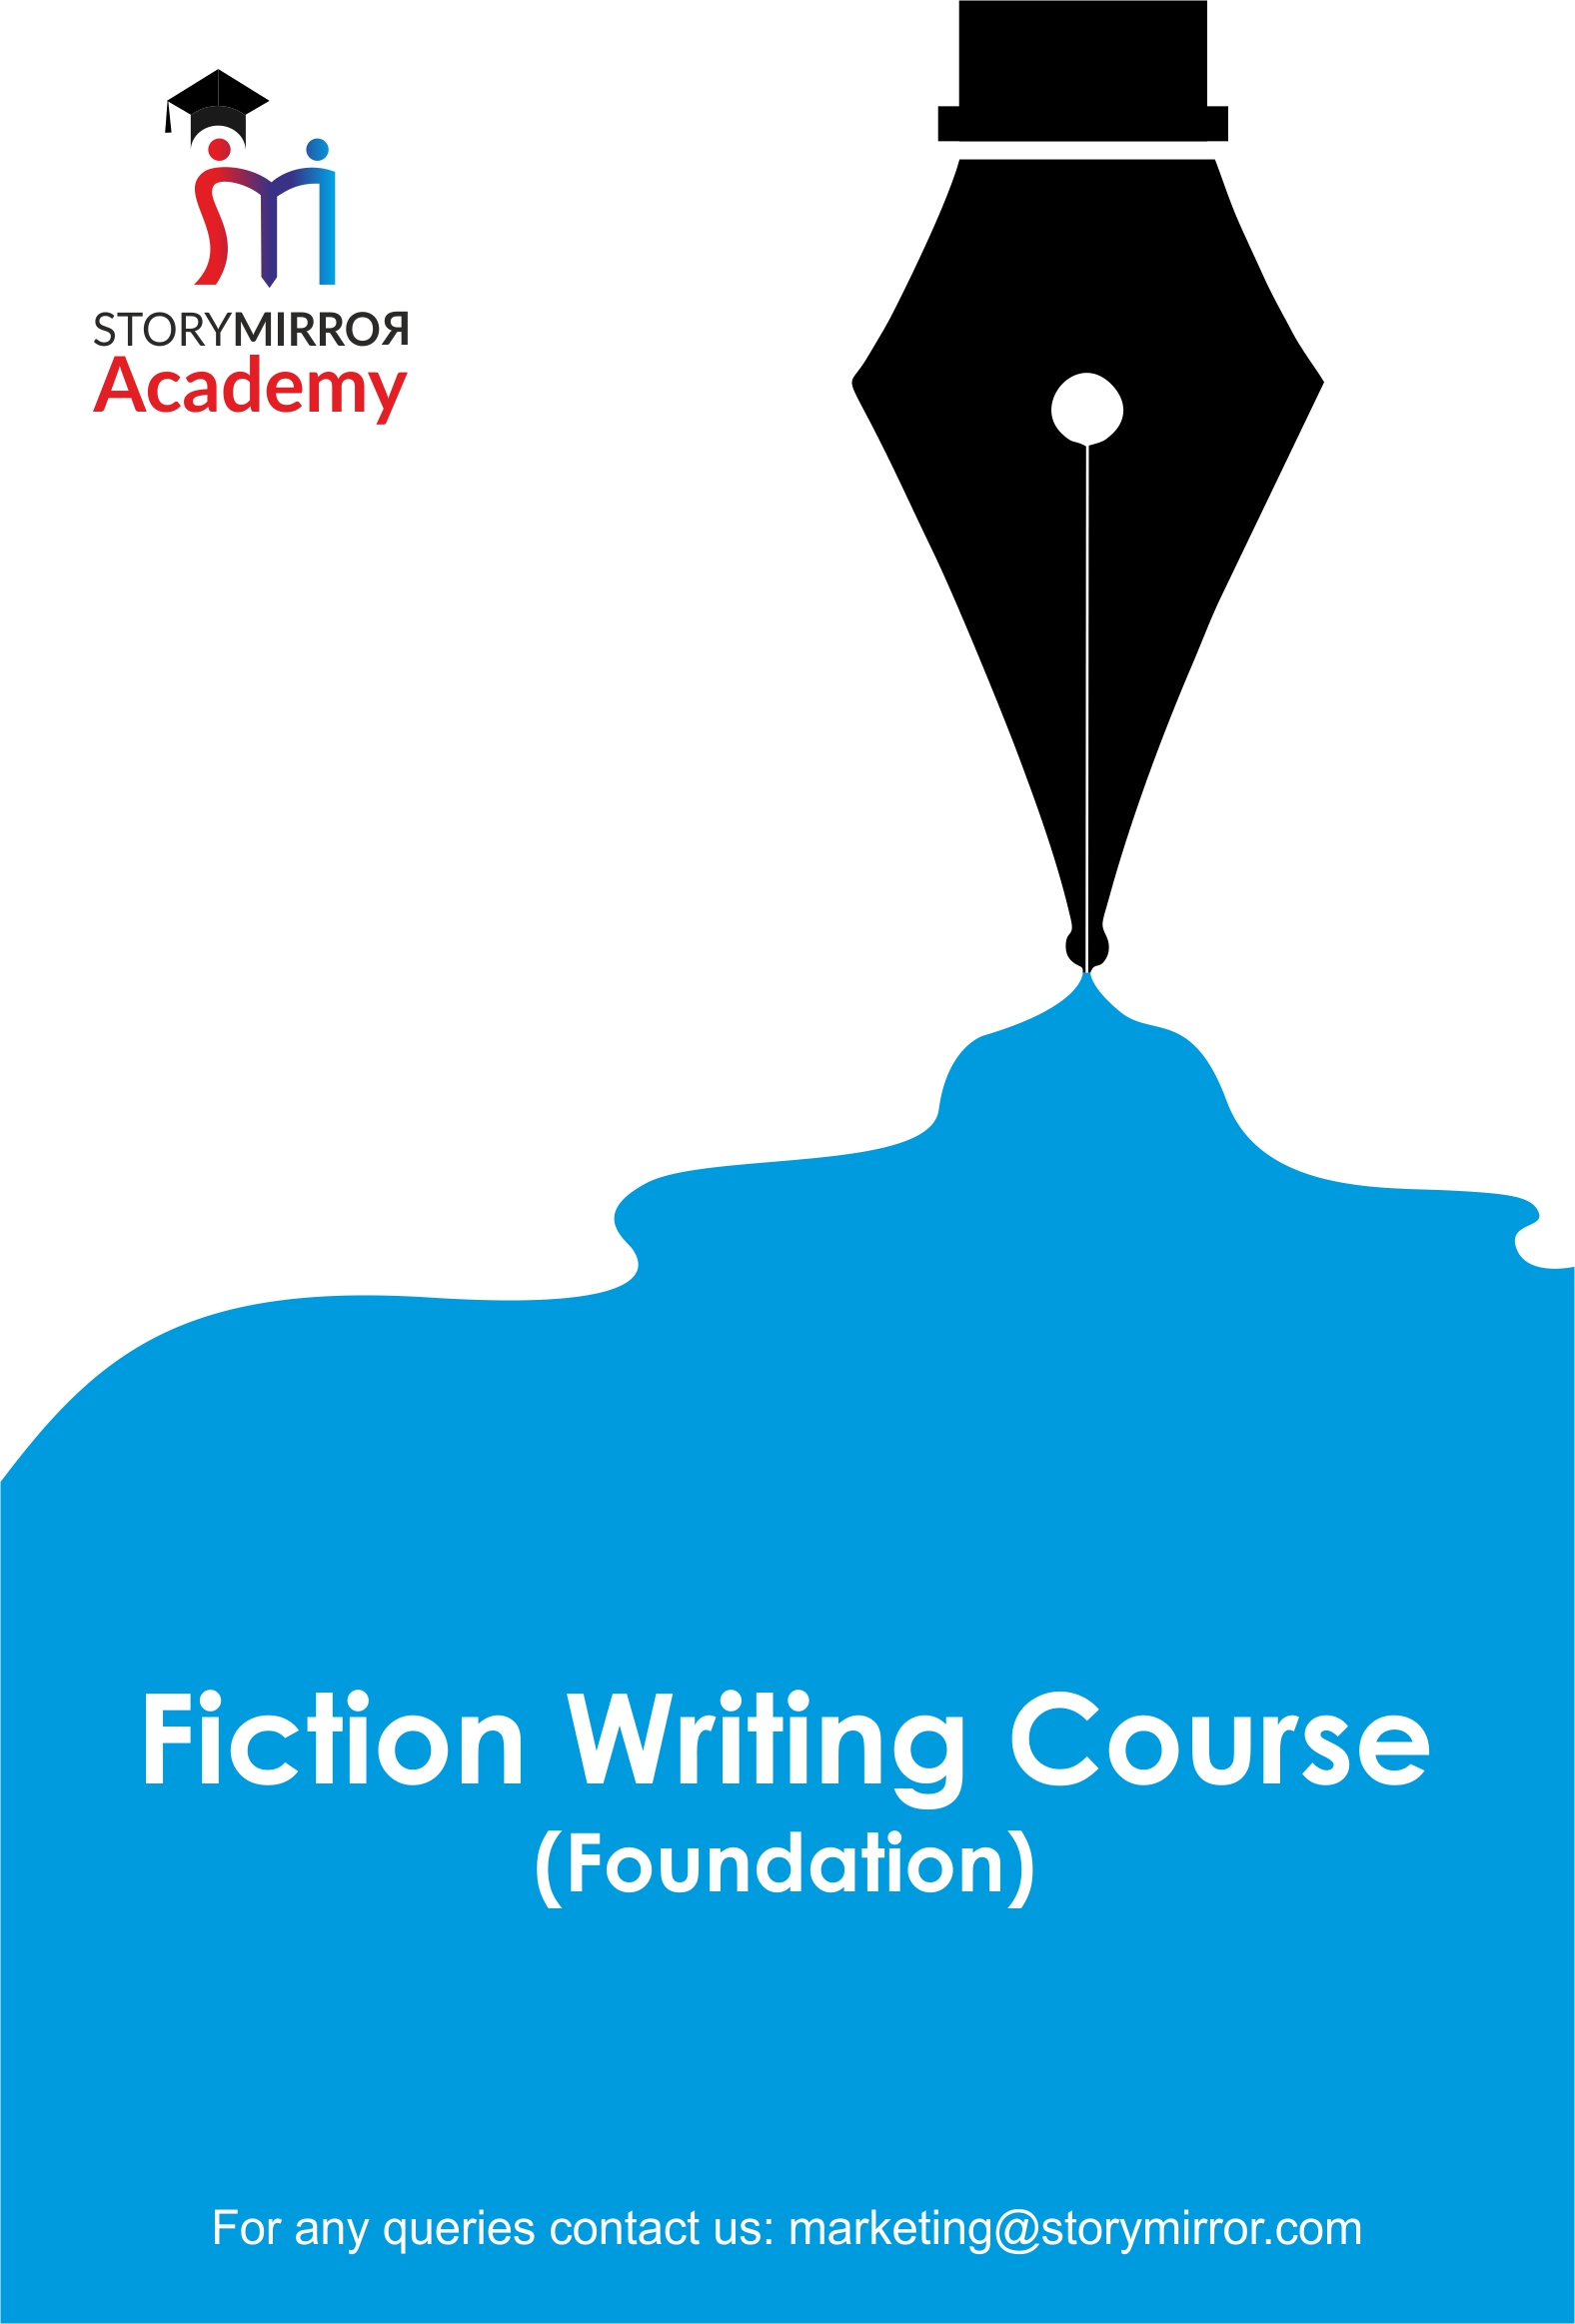 Fiction Writing Course - Foundation